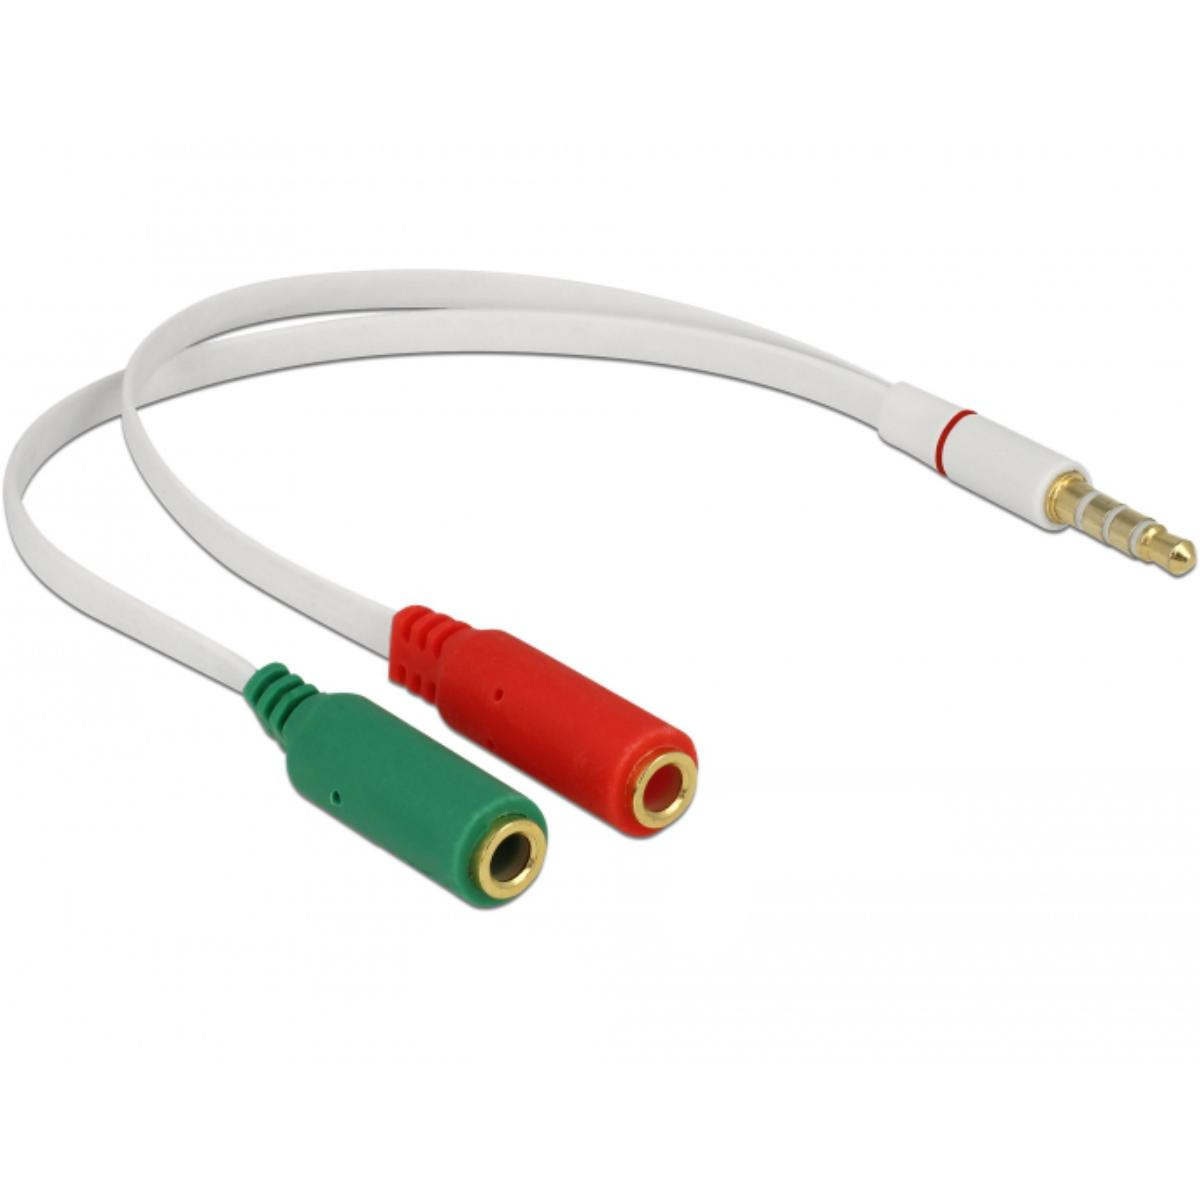 Jack splitter kabel - Microfoon en audio o.a. geschikt voor Apple Iphone/iPad en Playstation 4